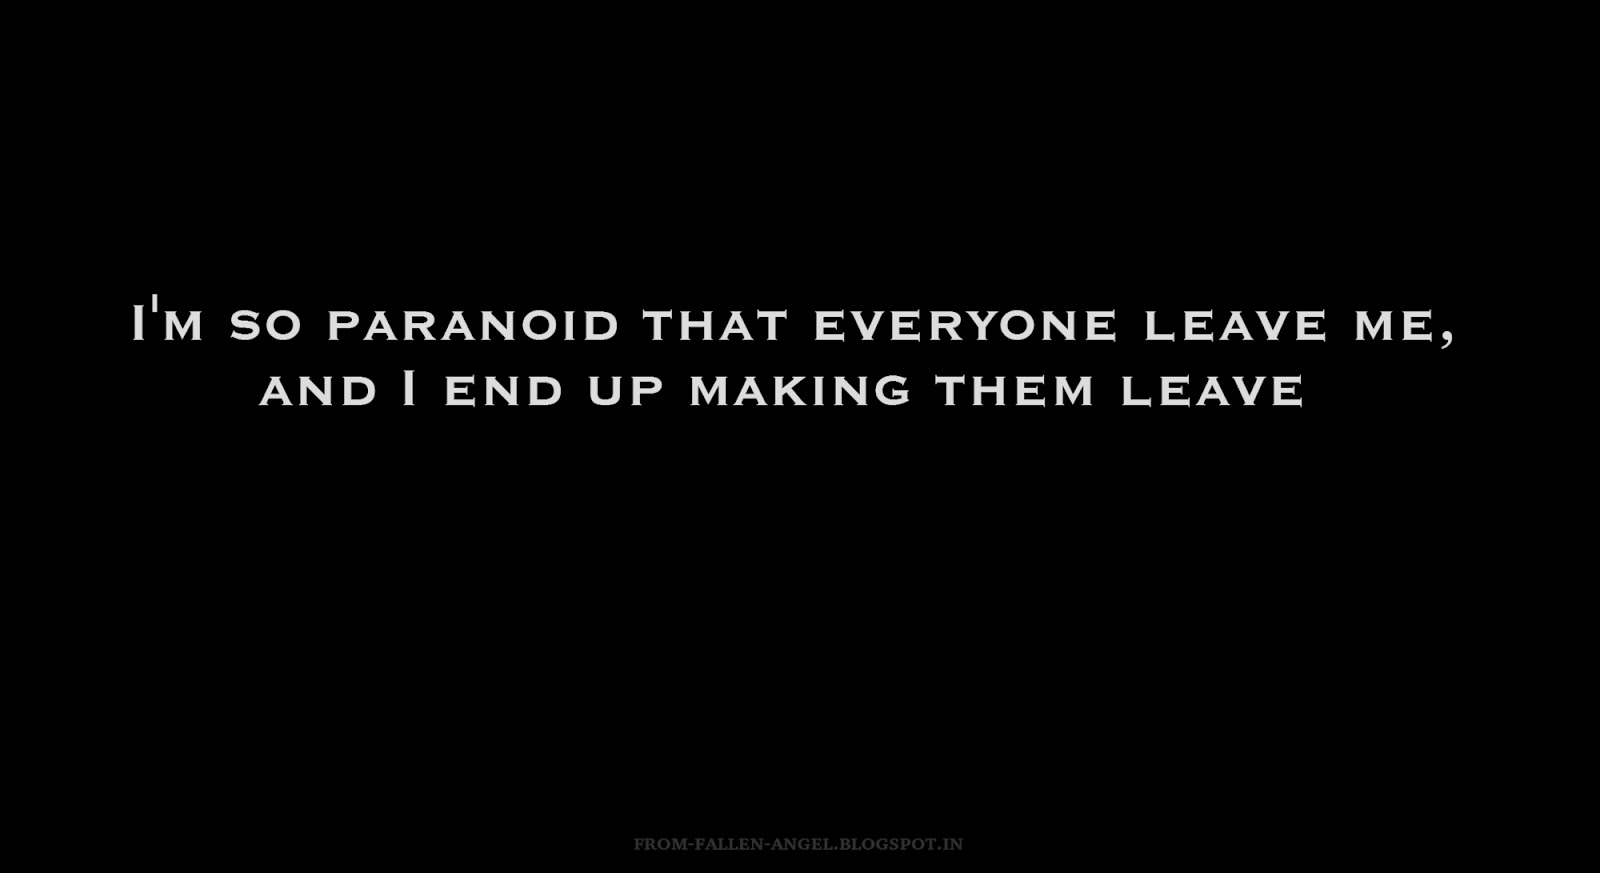 I'm so paranoid that everyone leave me, and I end up making them leave